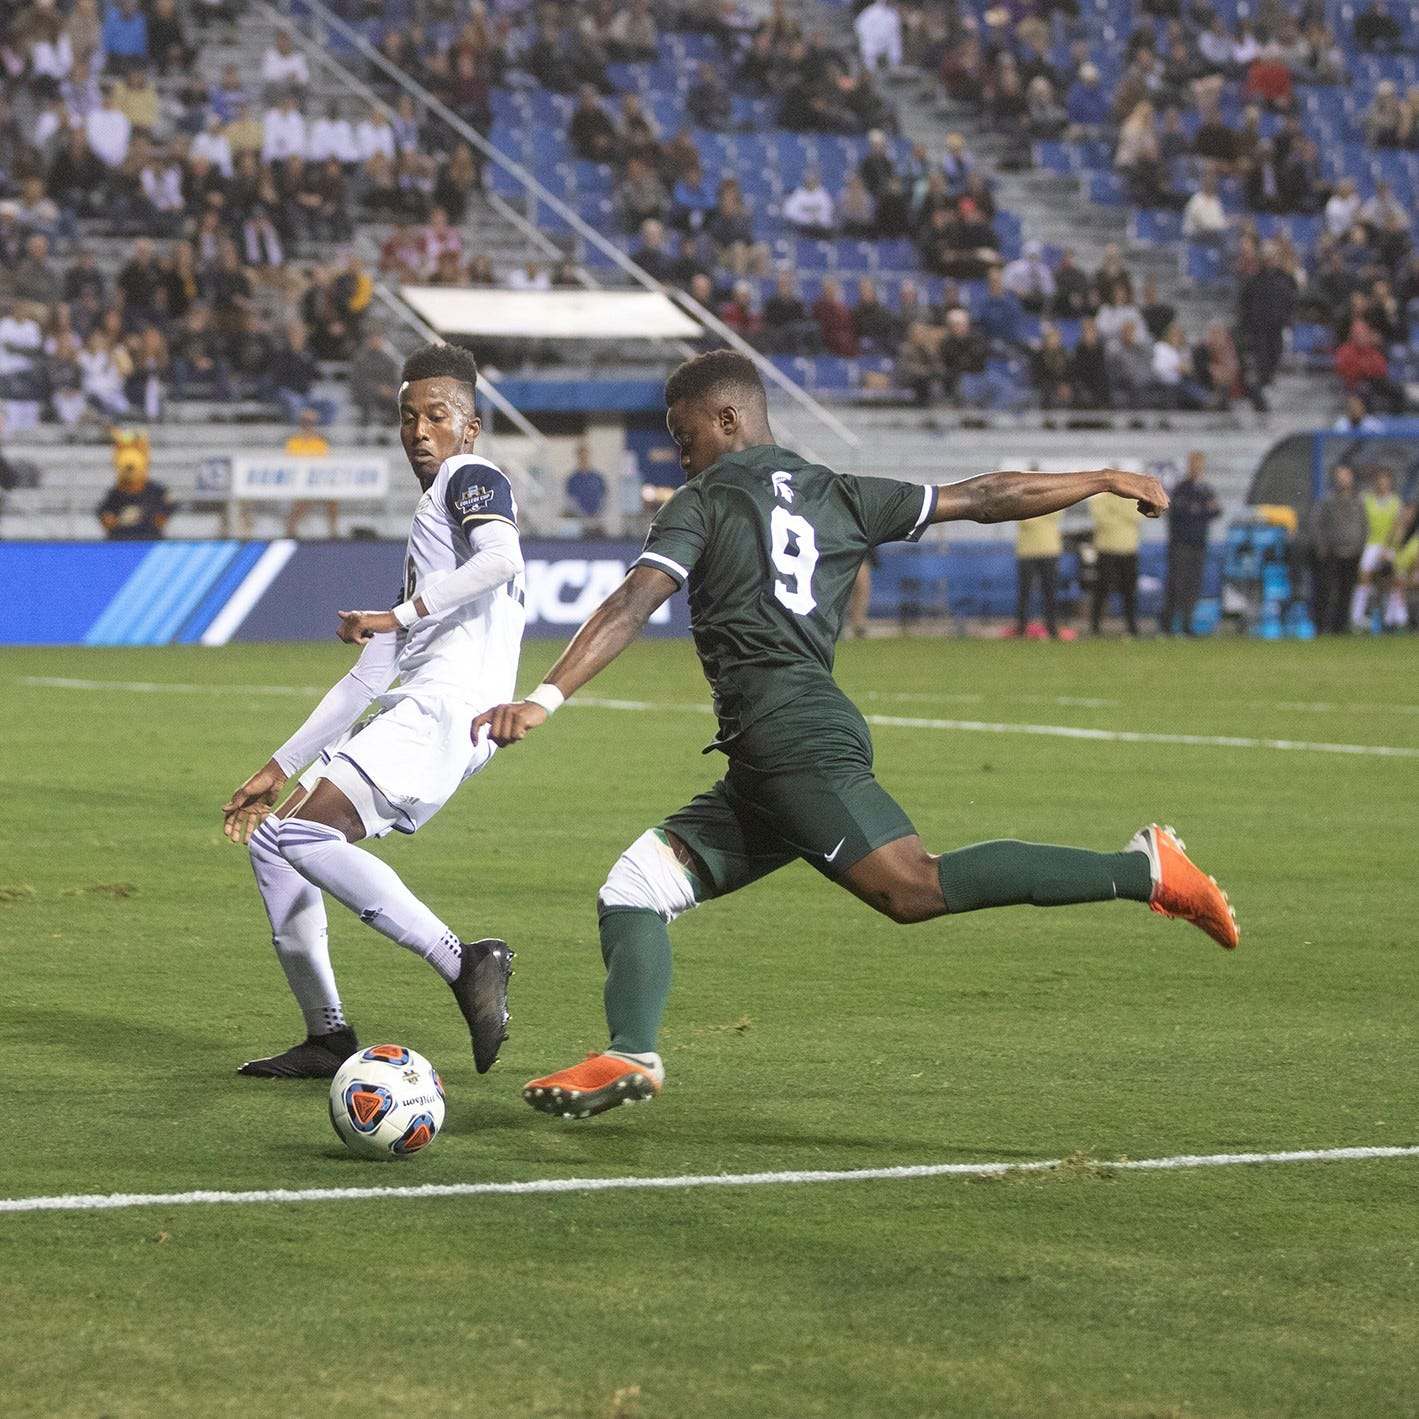 College Cup: Akron routs Michigan State, 5-1, in NCAA tournament national semifinals